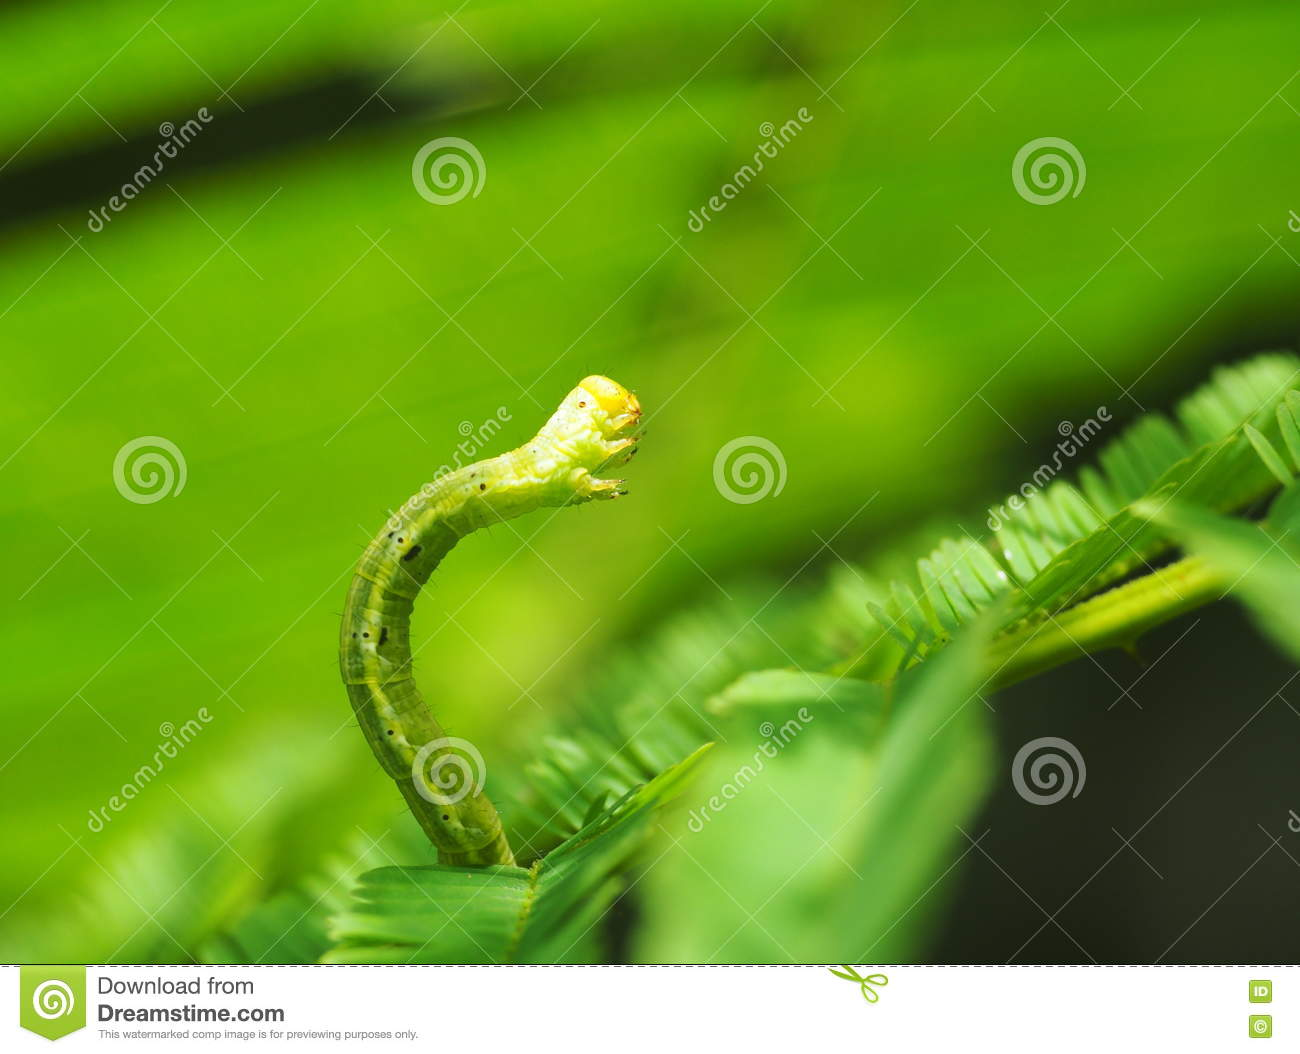 Cute Green Caterpillar Larva Worm In Nature Stock Image Image Of